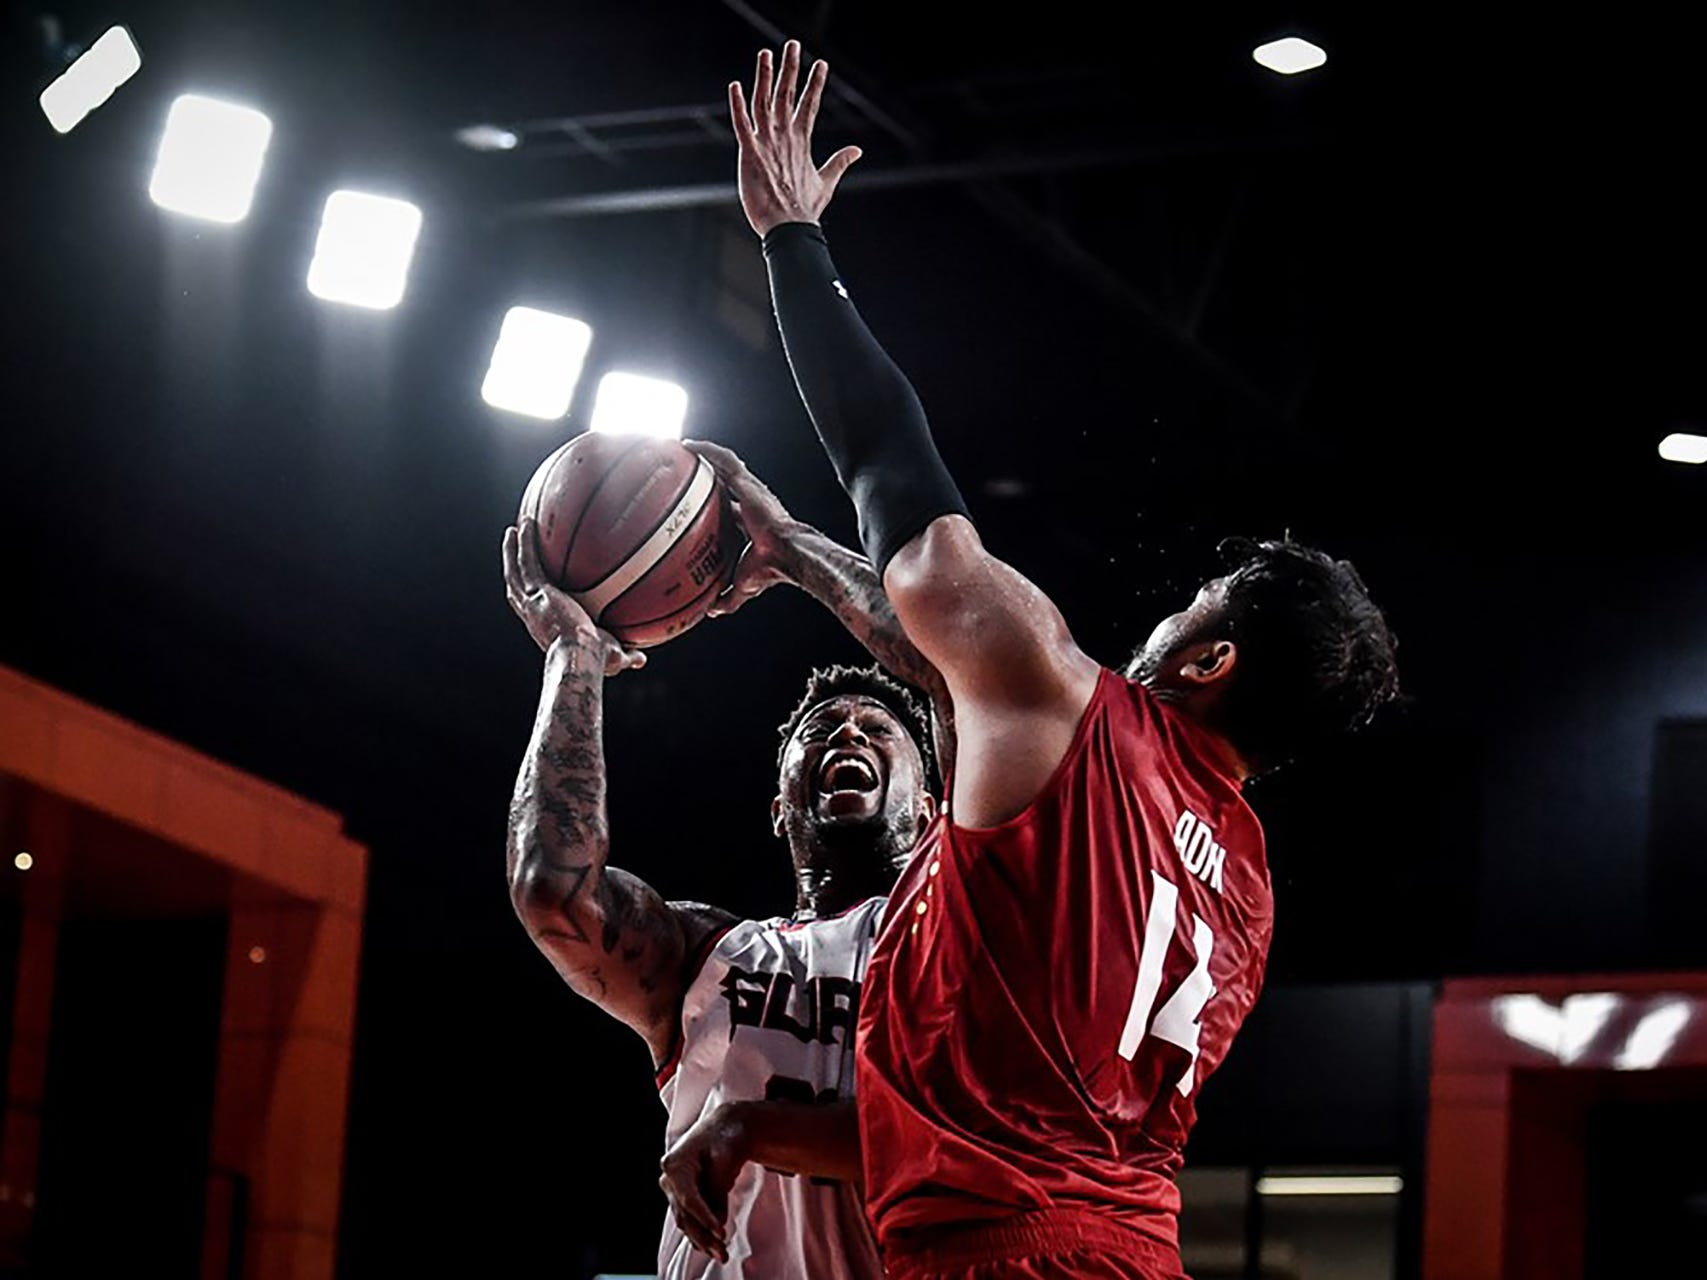 Guam's Earnest Ross goes for two hard points against Indonesia during their game Thursday night at the FIBA Asia Cup 2021 Pre-Qualifers.